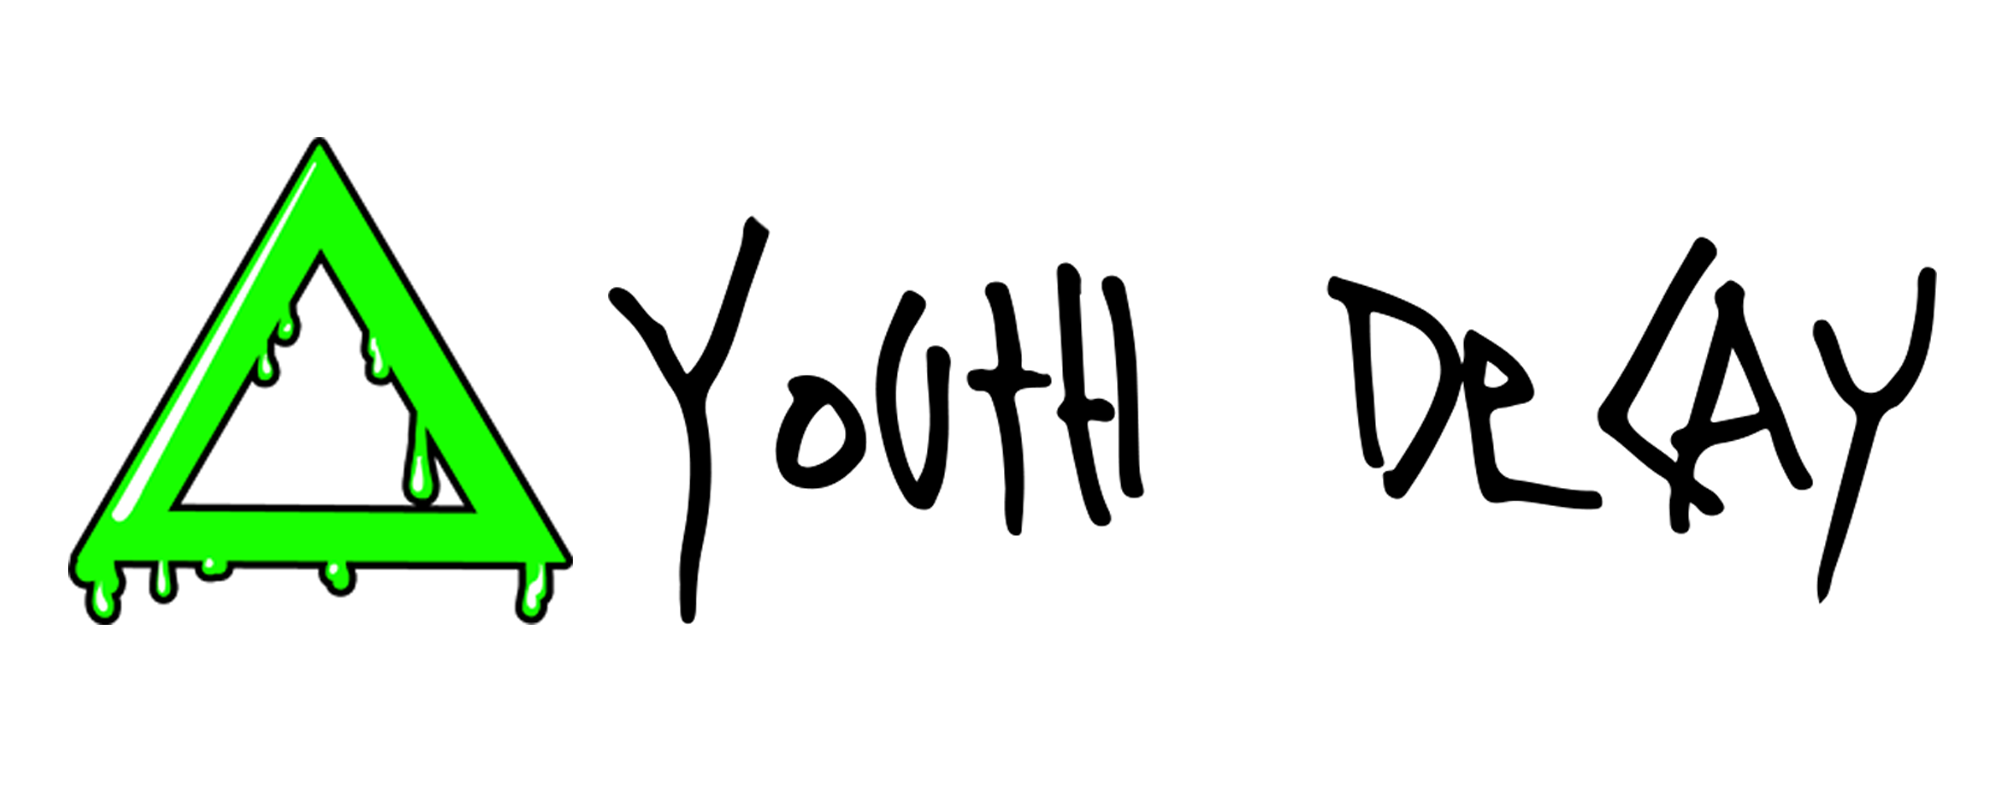 ∆ Youth Decay